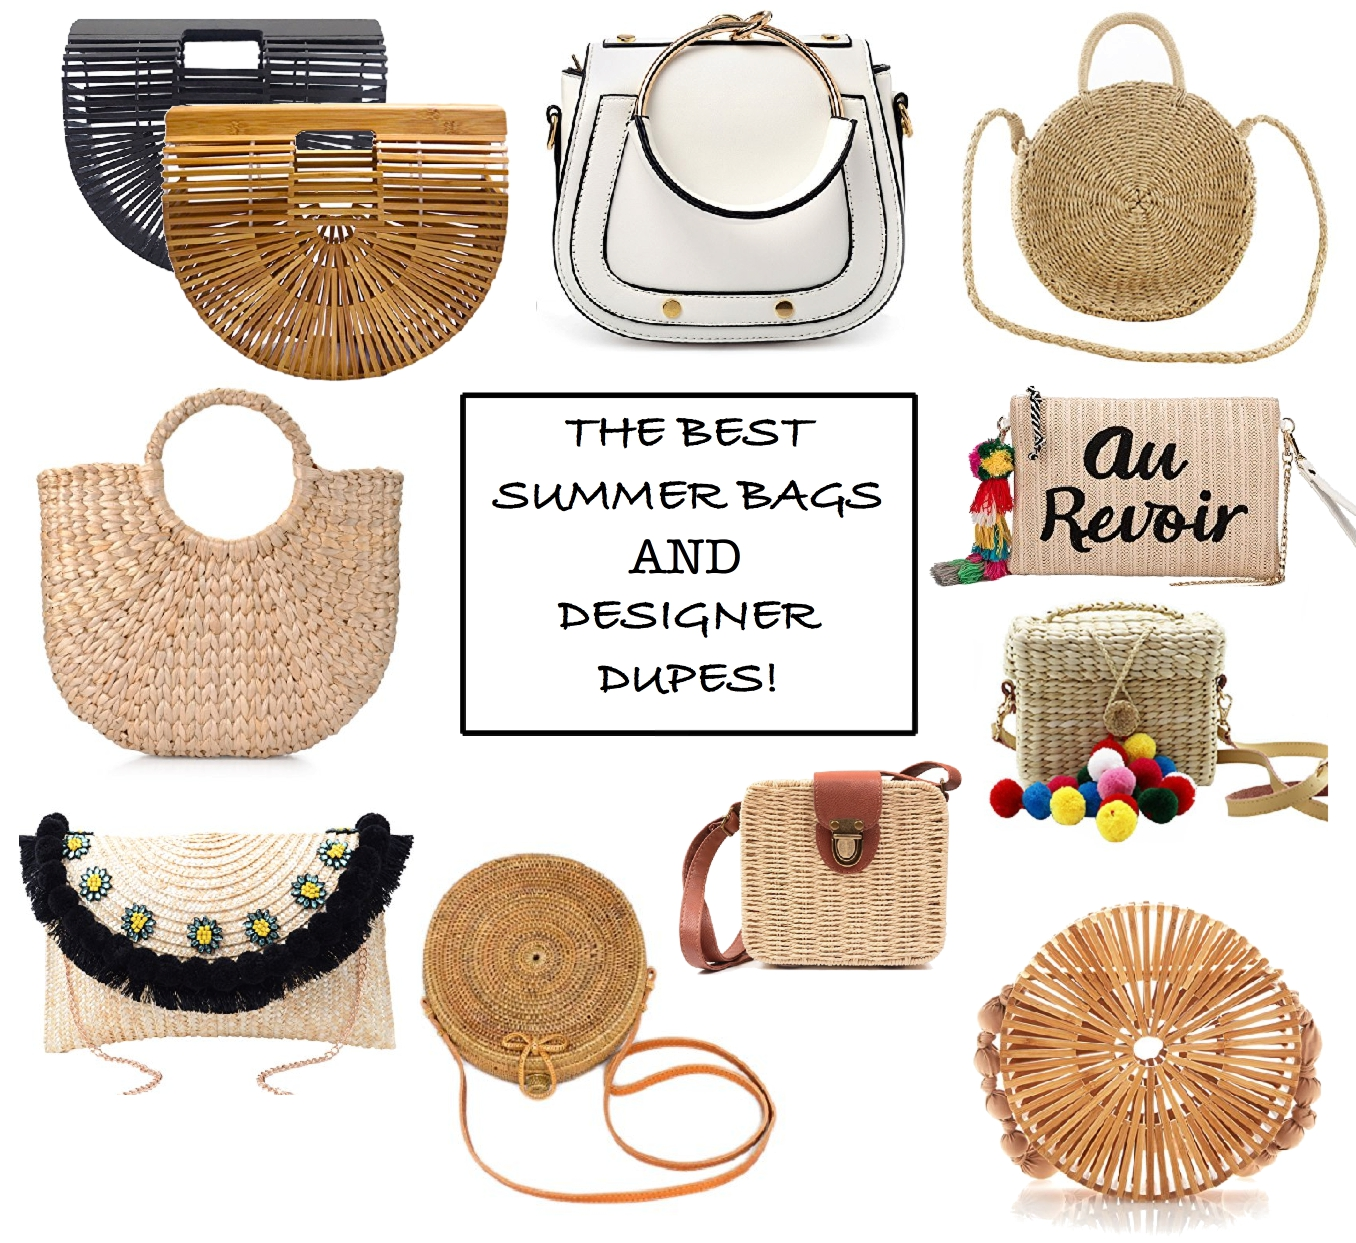 0bbf44bd2c must-have-bages-and-designer-dupes-of-summer-2018-cult-gaia-dupe-woven-bags -basket-bags-summer-2018-handbag-trends